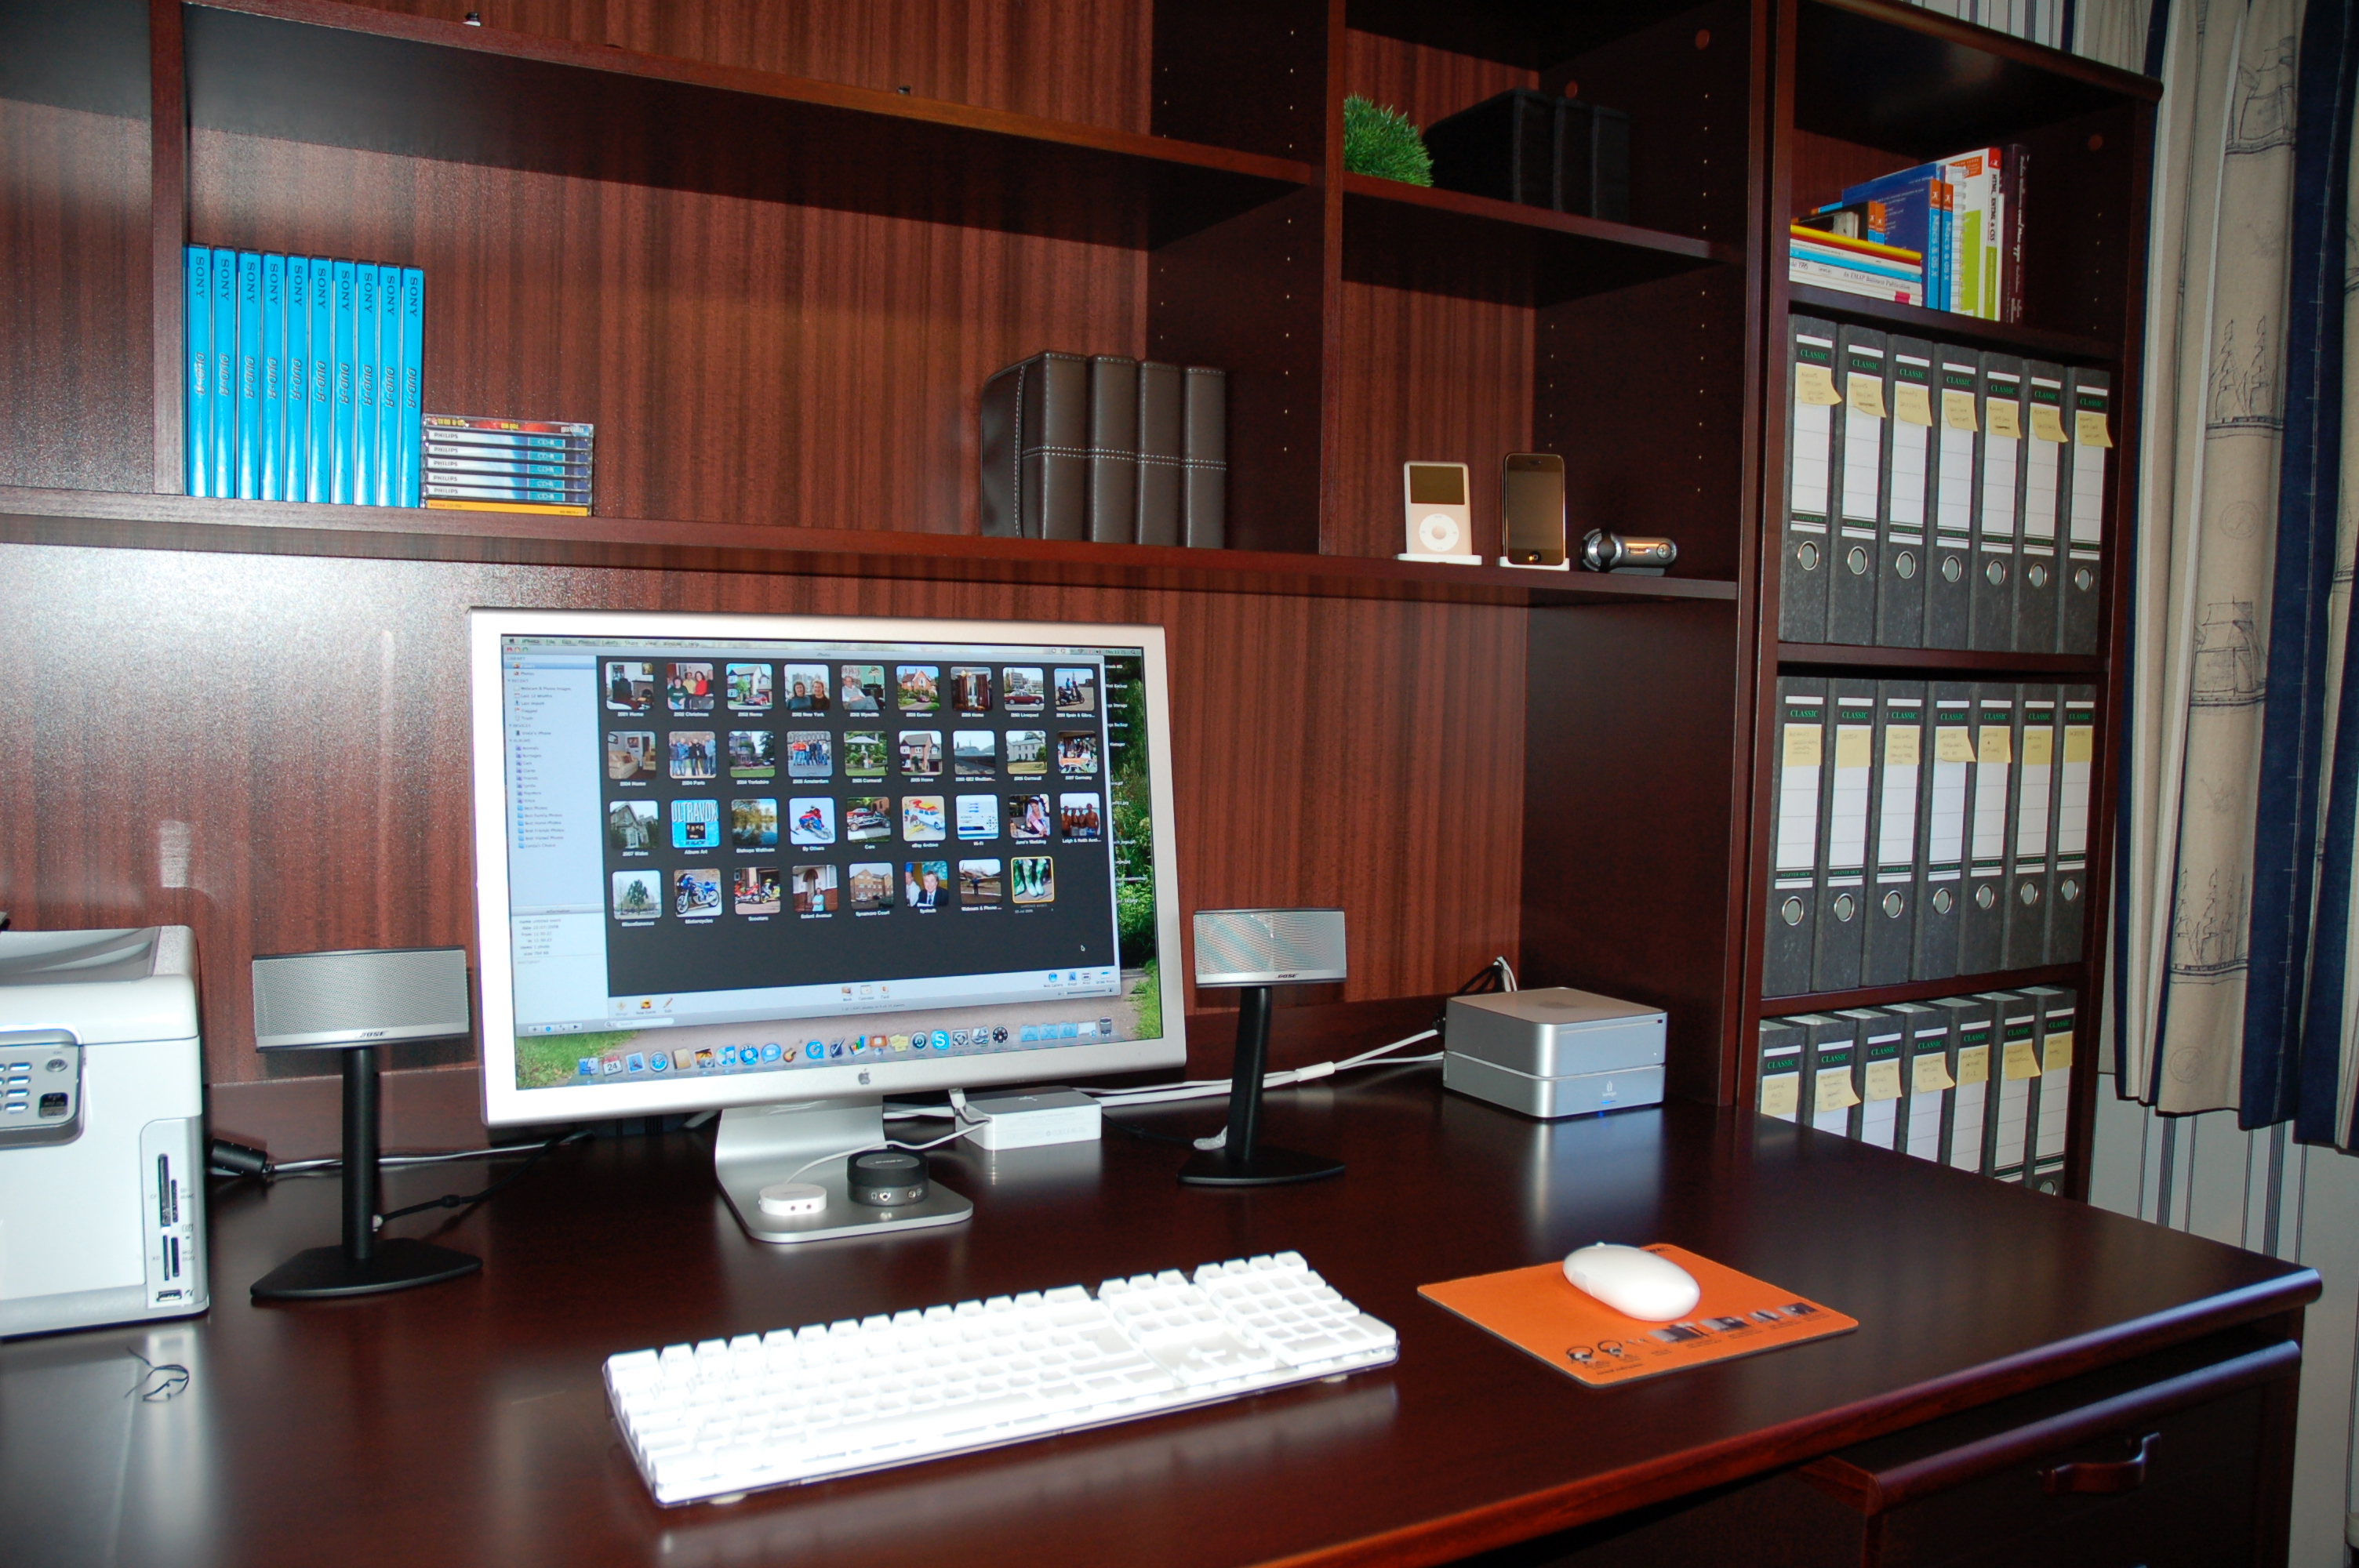 A MacMini on top of a matching back-up drive powers a 23 inch Mac monitor filled with photo icons, coupled to an optical mouse, printer and small stereo speakers, all on a dark wood desk unit with matching shelving and adjacent file system.  Files are in the filing system and an iPod Classic is on one of the shelves